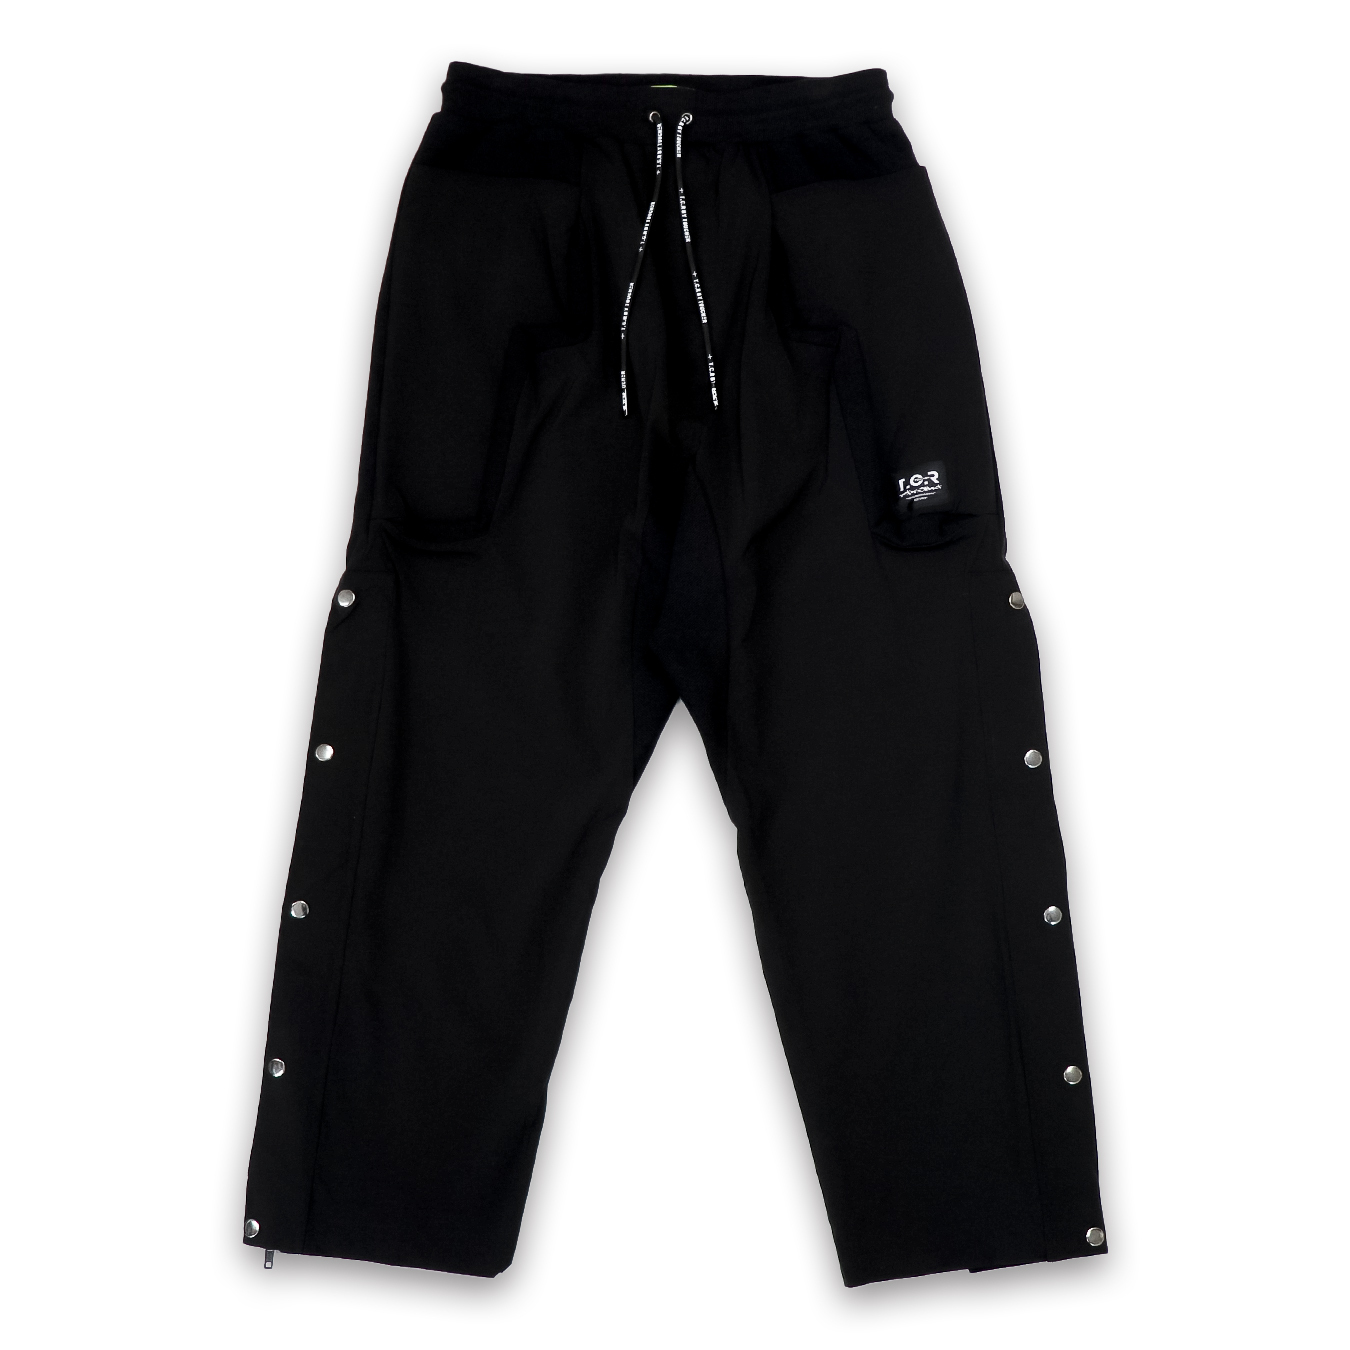 T.C.R EQUIPMENT SHELL PANTS V2 - BLACK